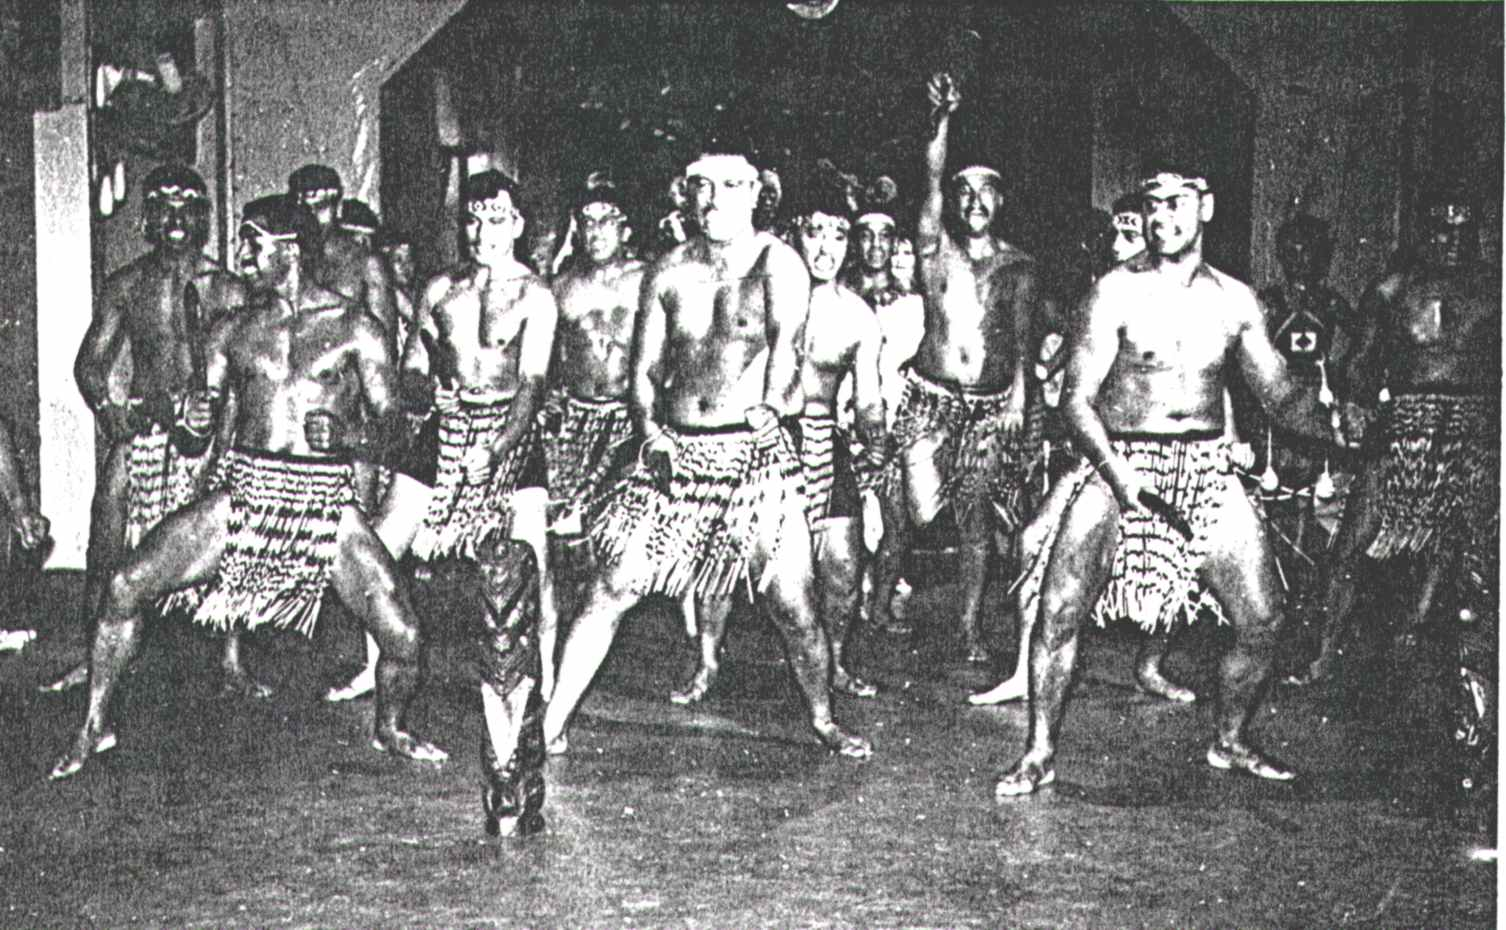 New Zealand Army Male Personnel Performing Maori Dance, 1.4.1971